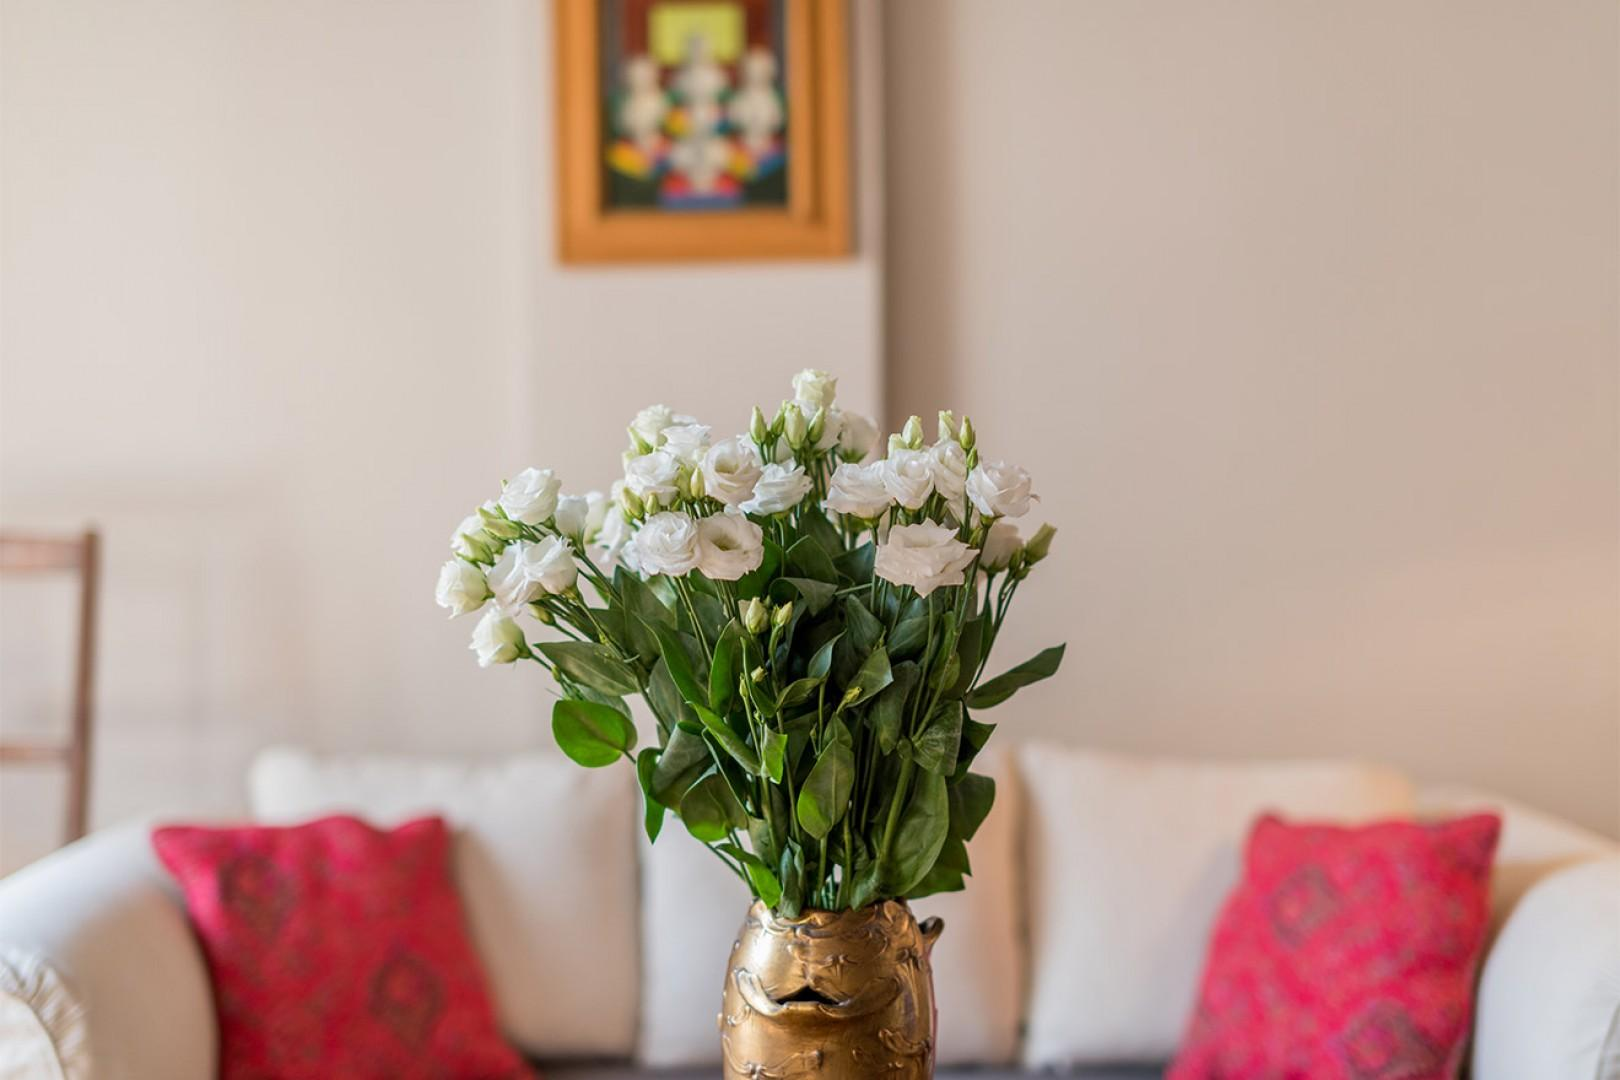 Bring home some fresh flowers from one of the local markets.